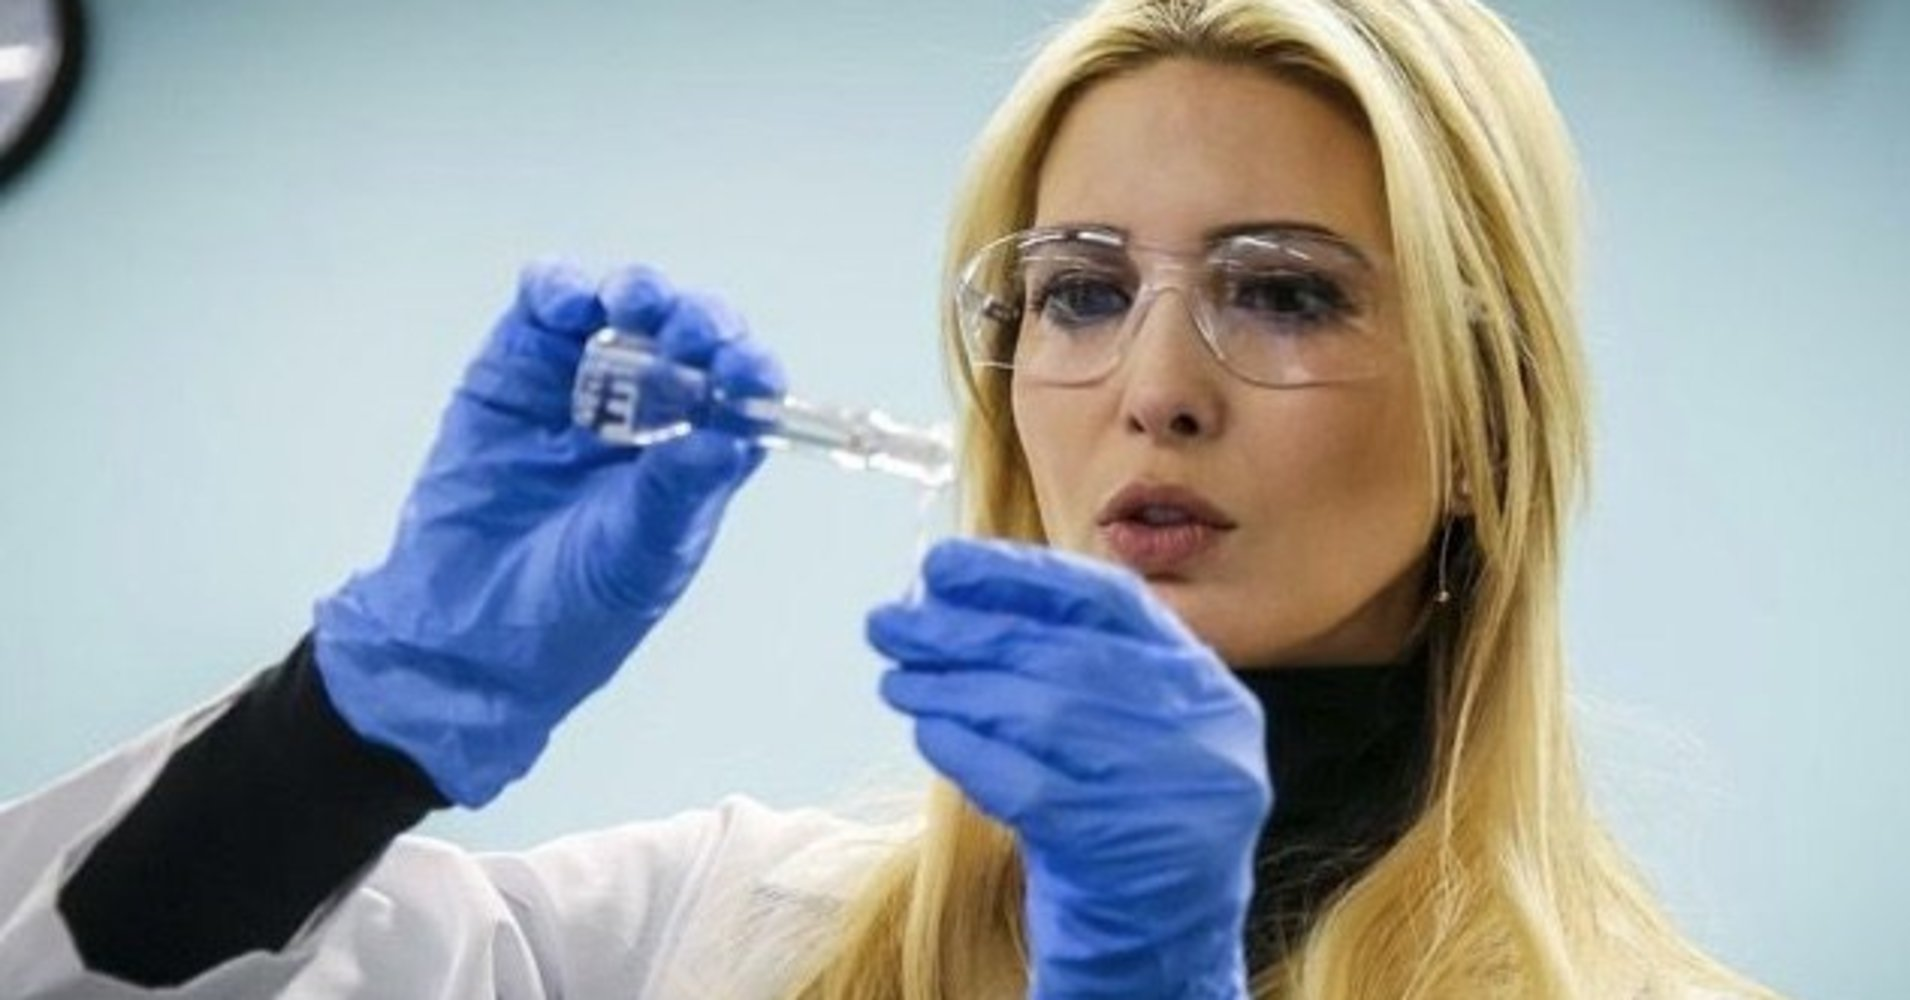 Ivanka Trump cosplaying as a scientist has instantly became Twitter's new favorite meme! (Photo: Twitter)